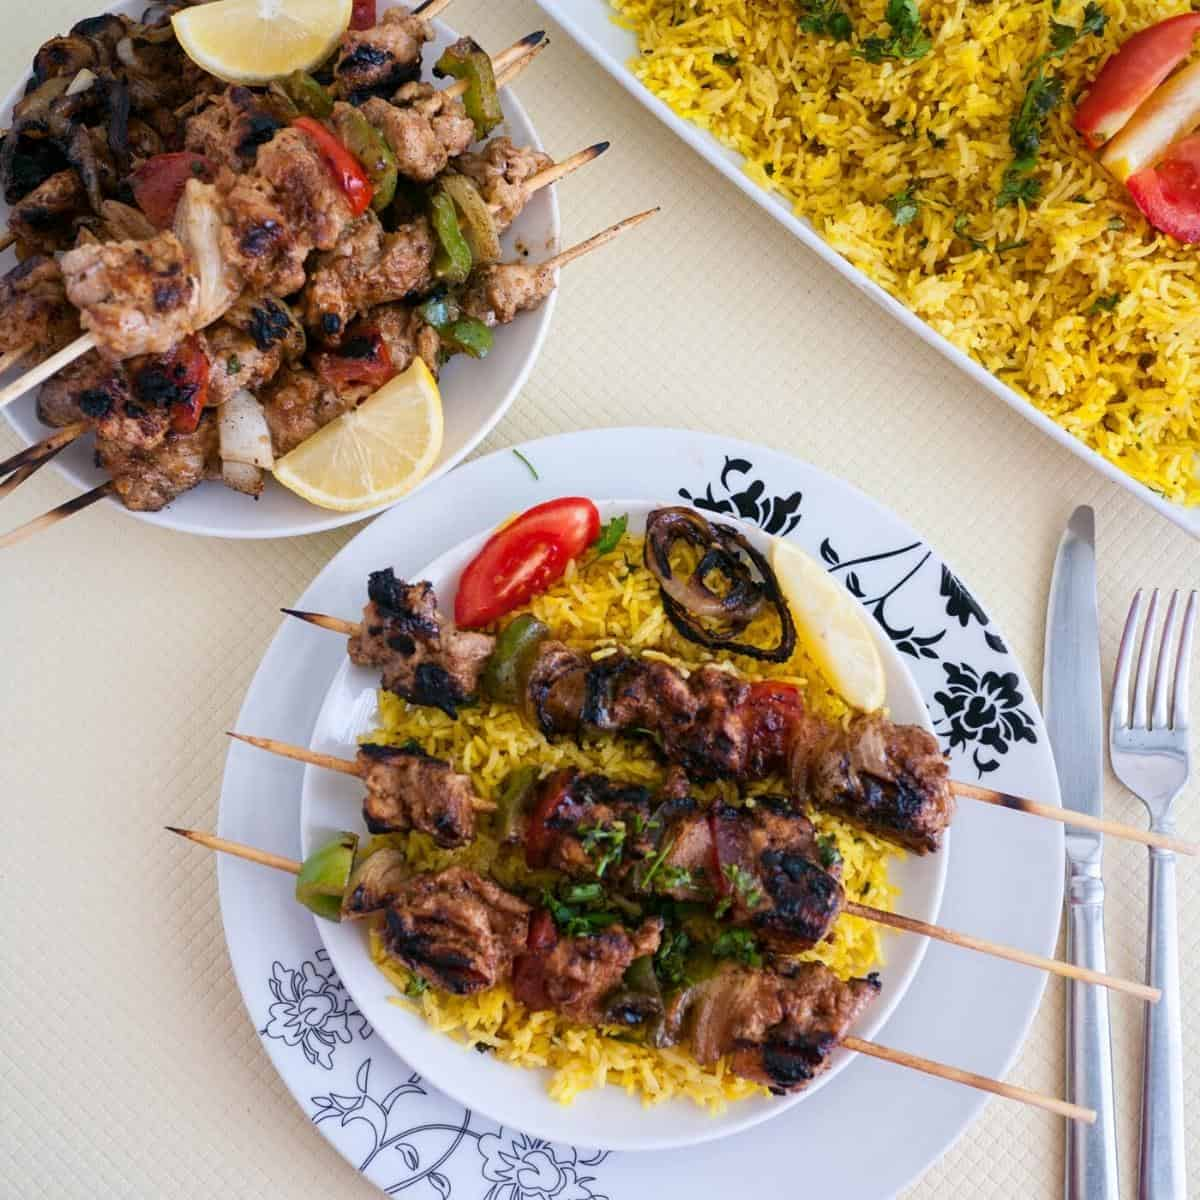 Grilled chicken on skewers over turmeric rice.